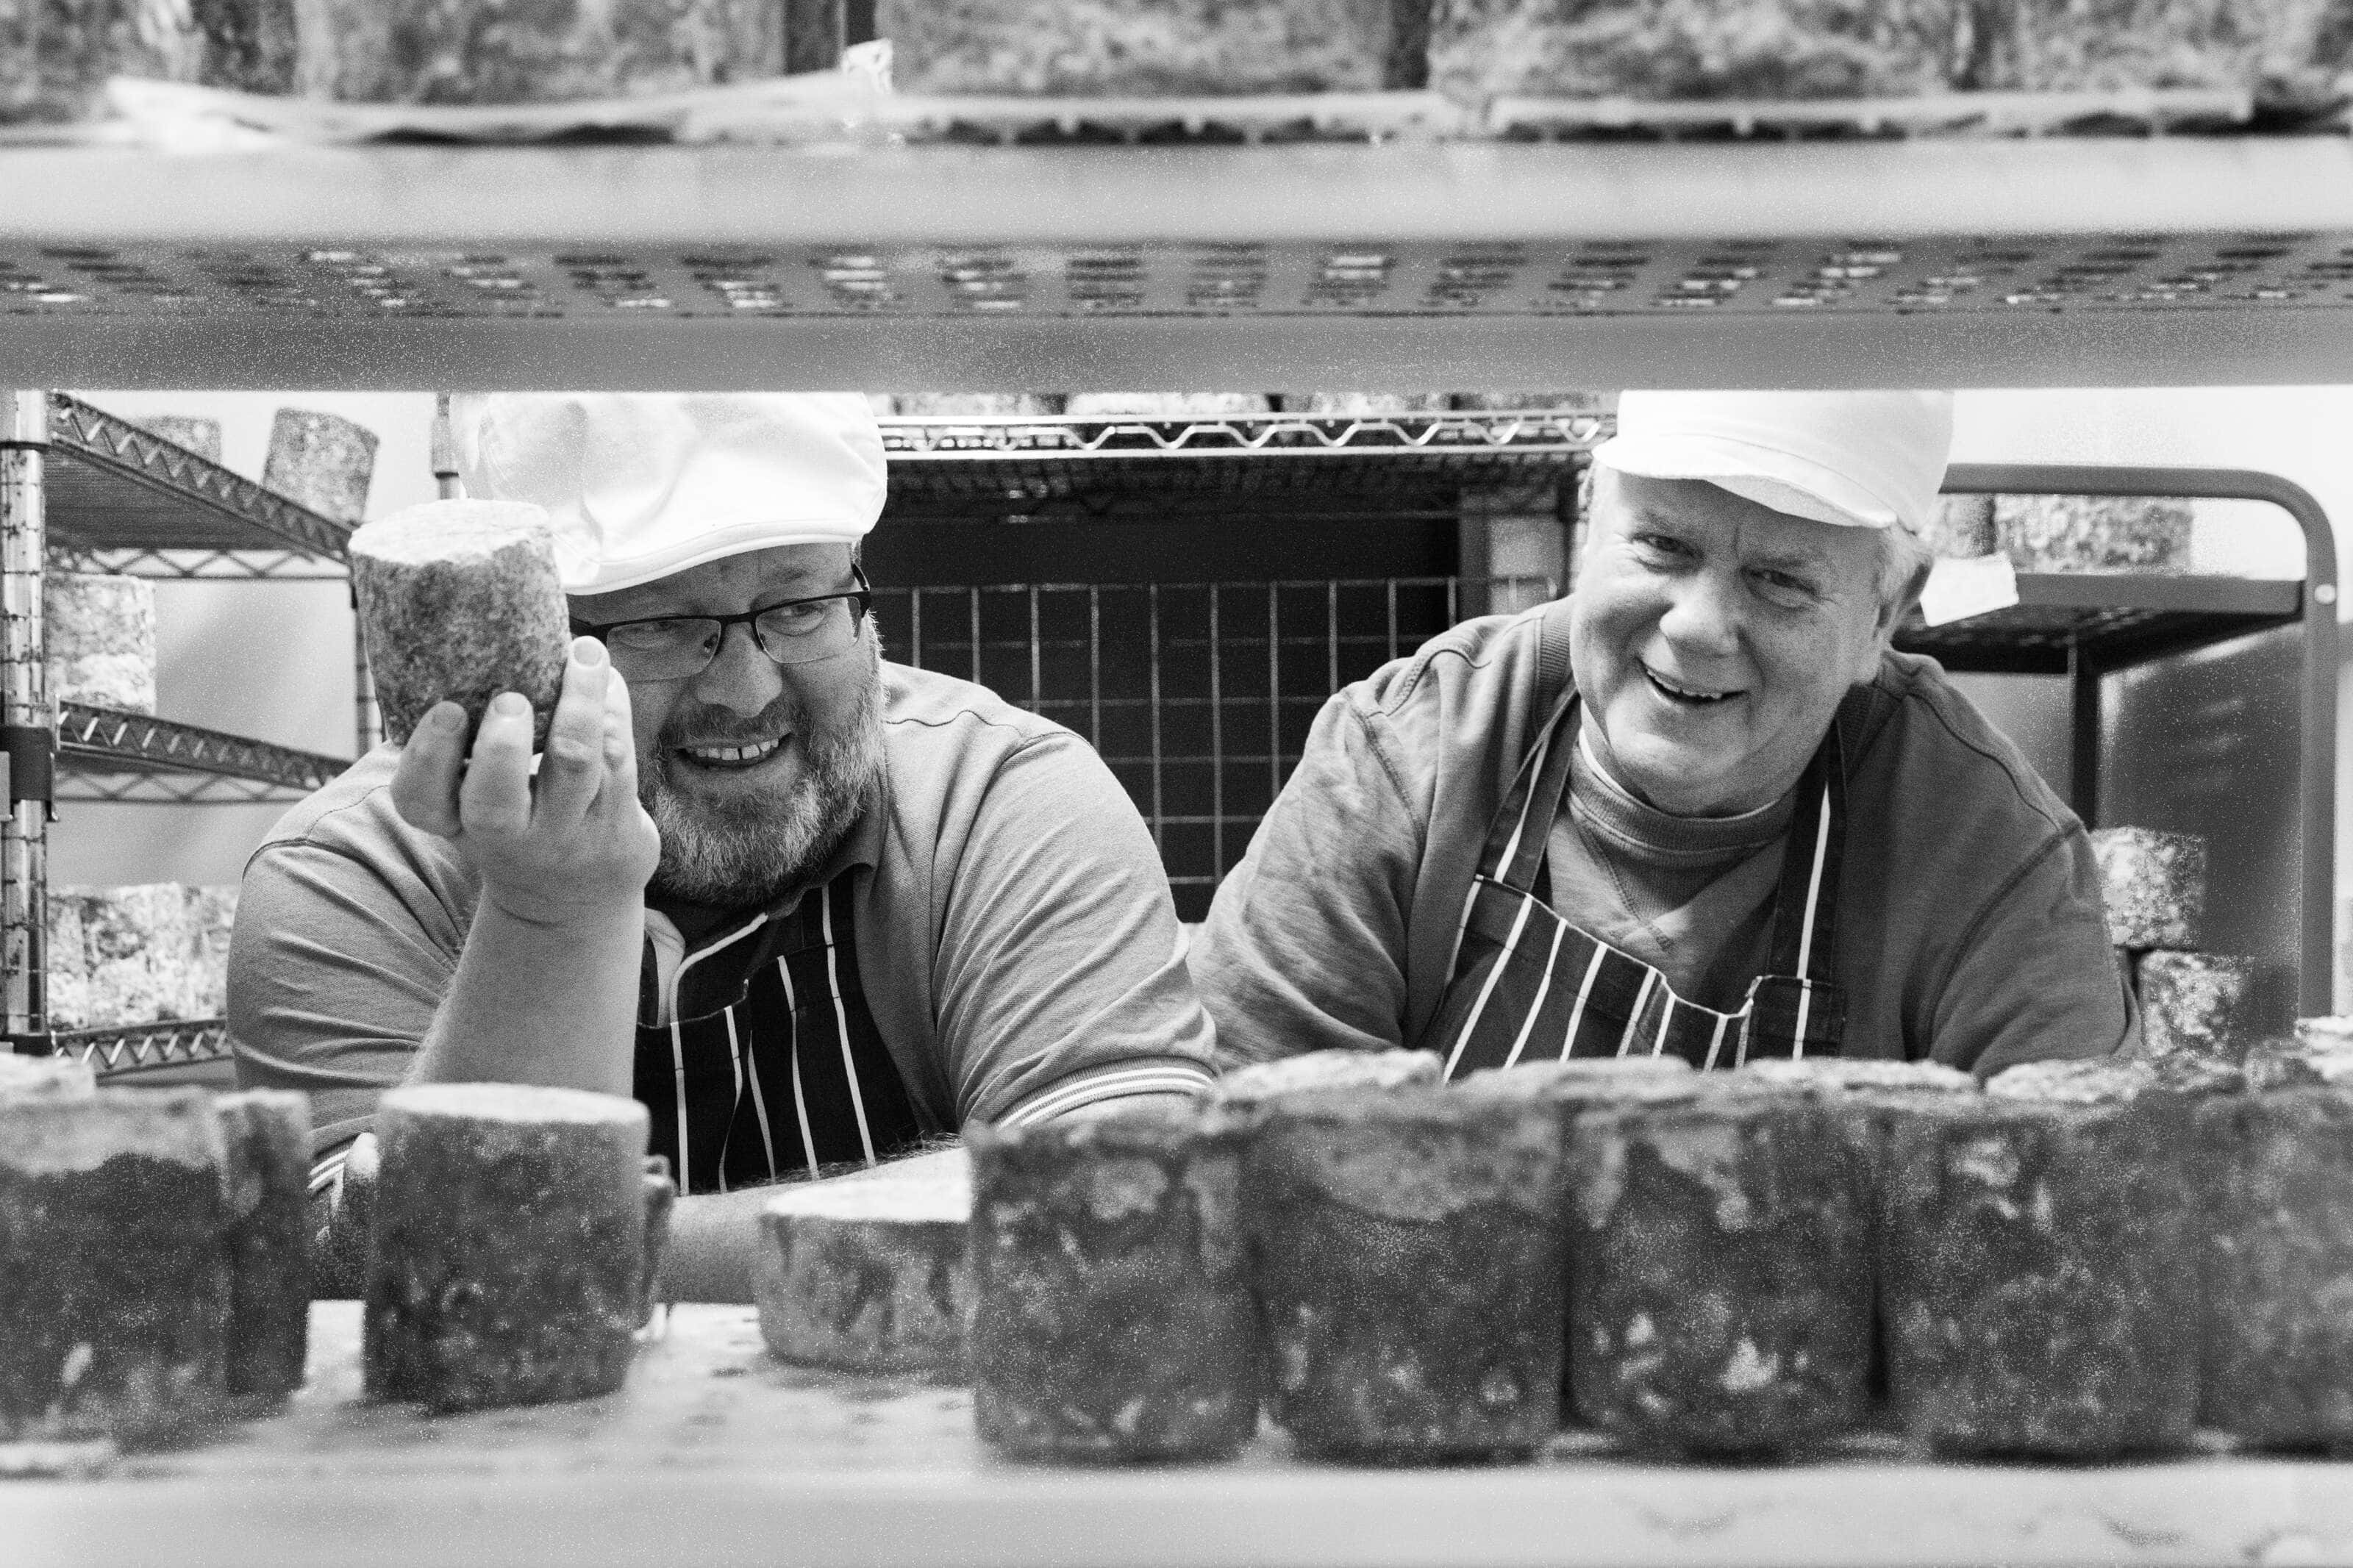 Philip and Keith, owners of Wildes Cheese of Tottenhams owners stood in one of the fridges holding Cheese and laughing.